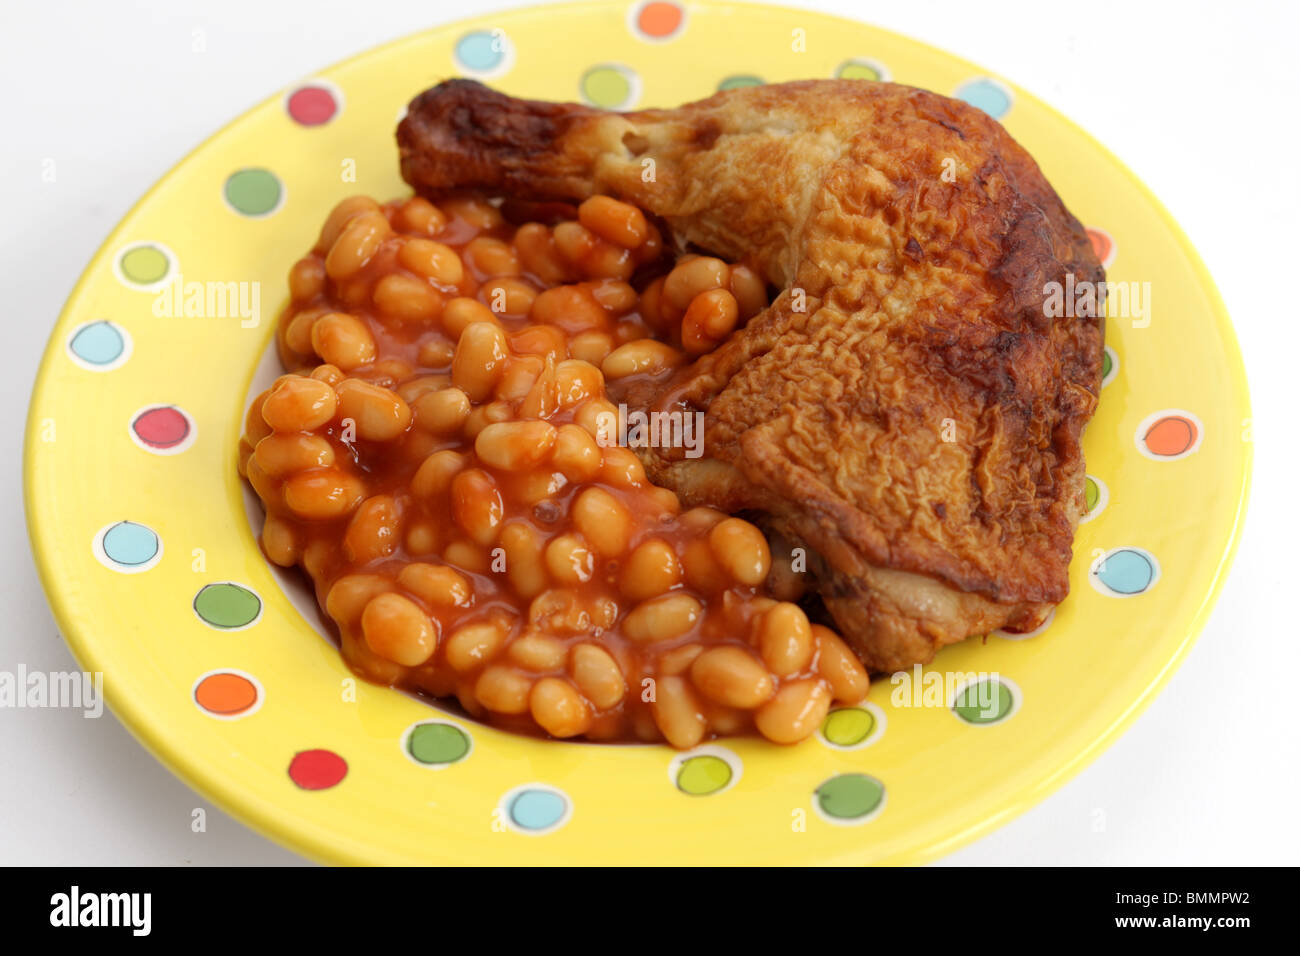 Stock Photo Roast Chicken With Baked Beans 29960478 on Food To Sell